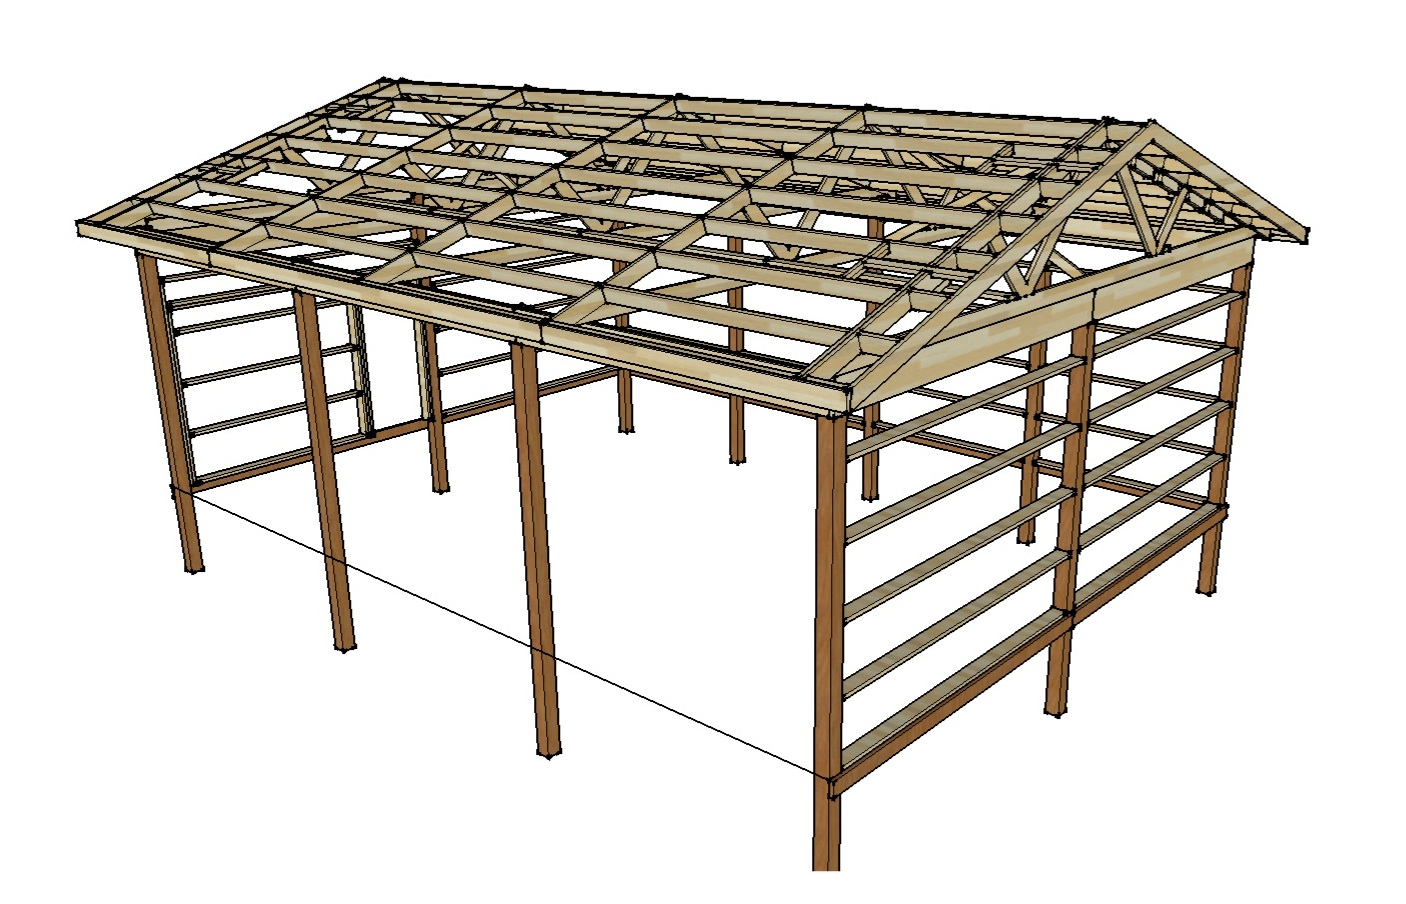 Pole barn plans and materials redneck diy for Pole barn building plans